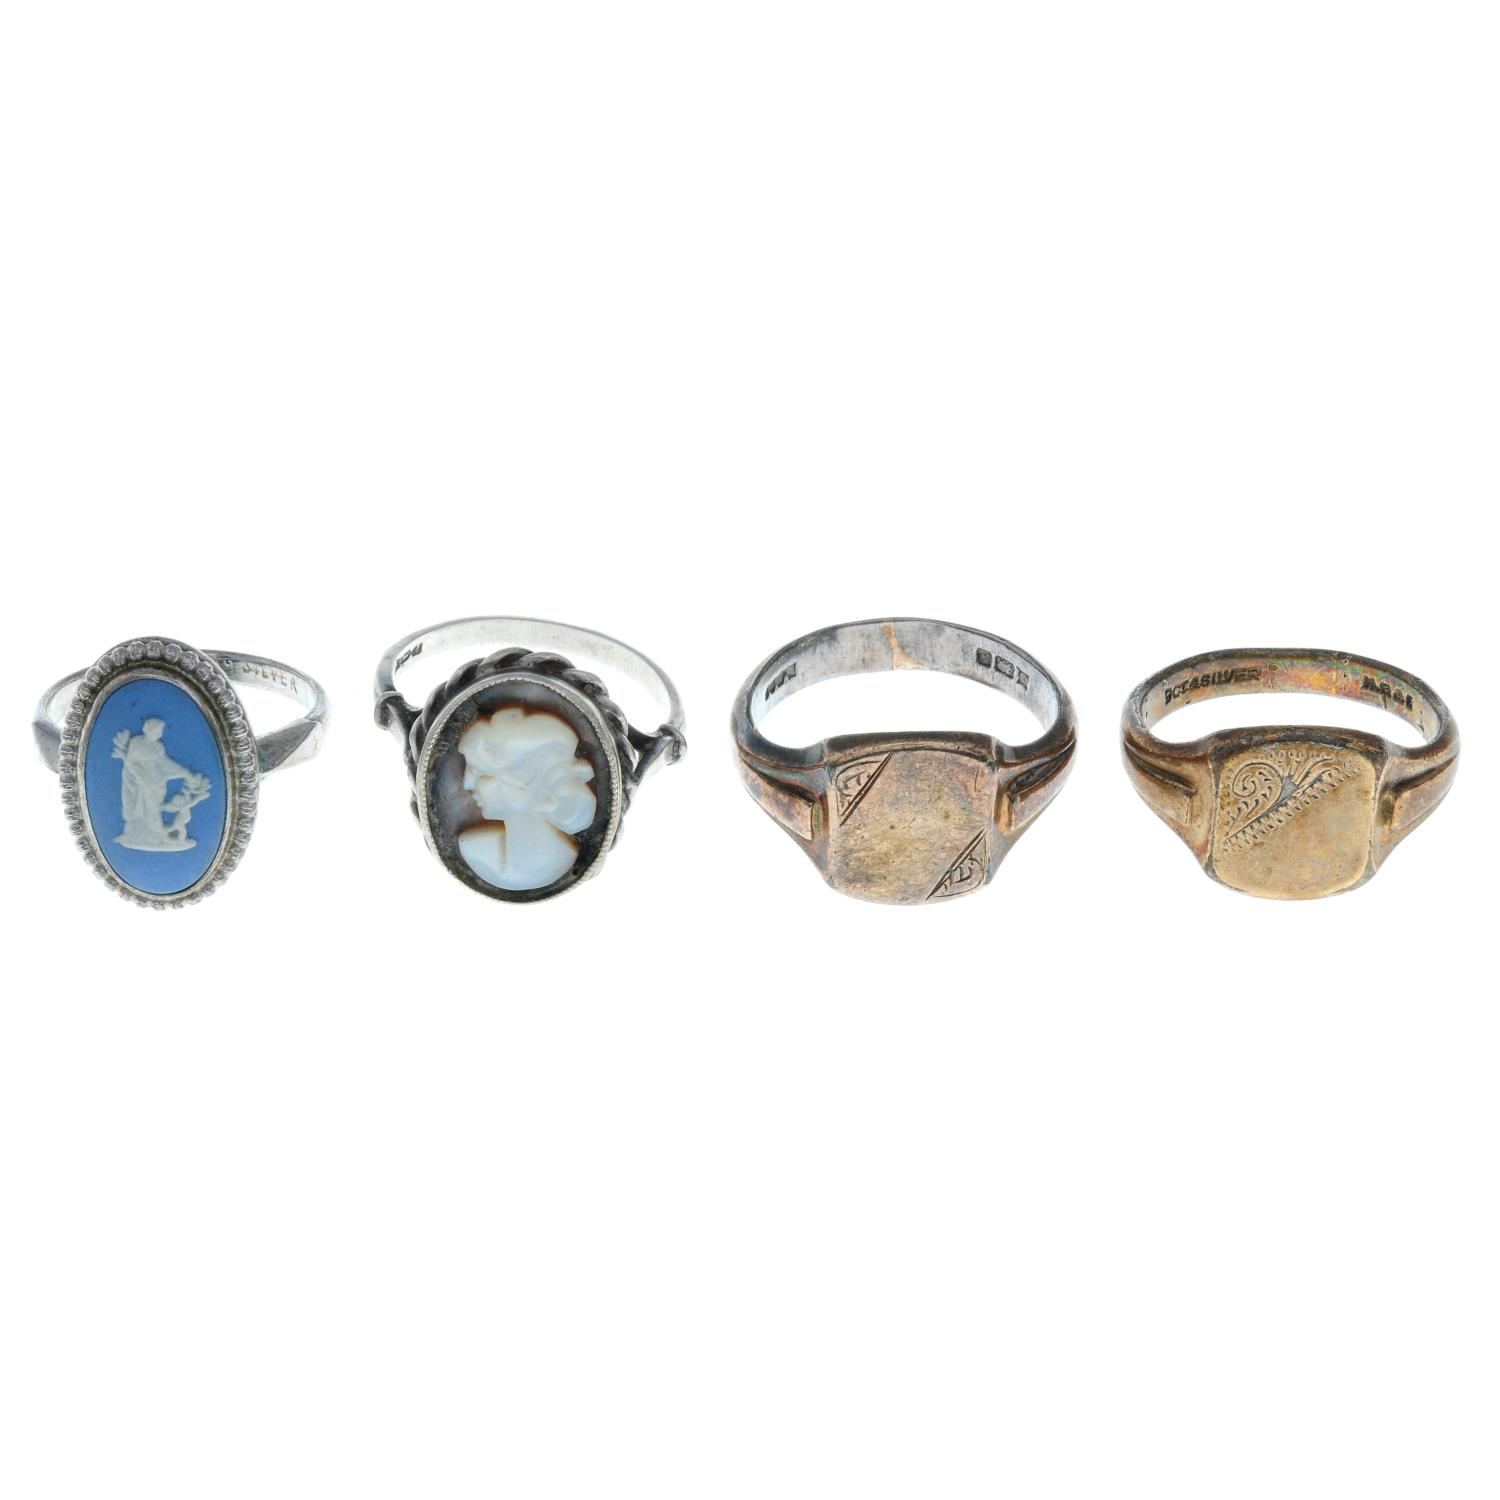 Fourteen early 20th century and later rings, - Image 2 of 4